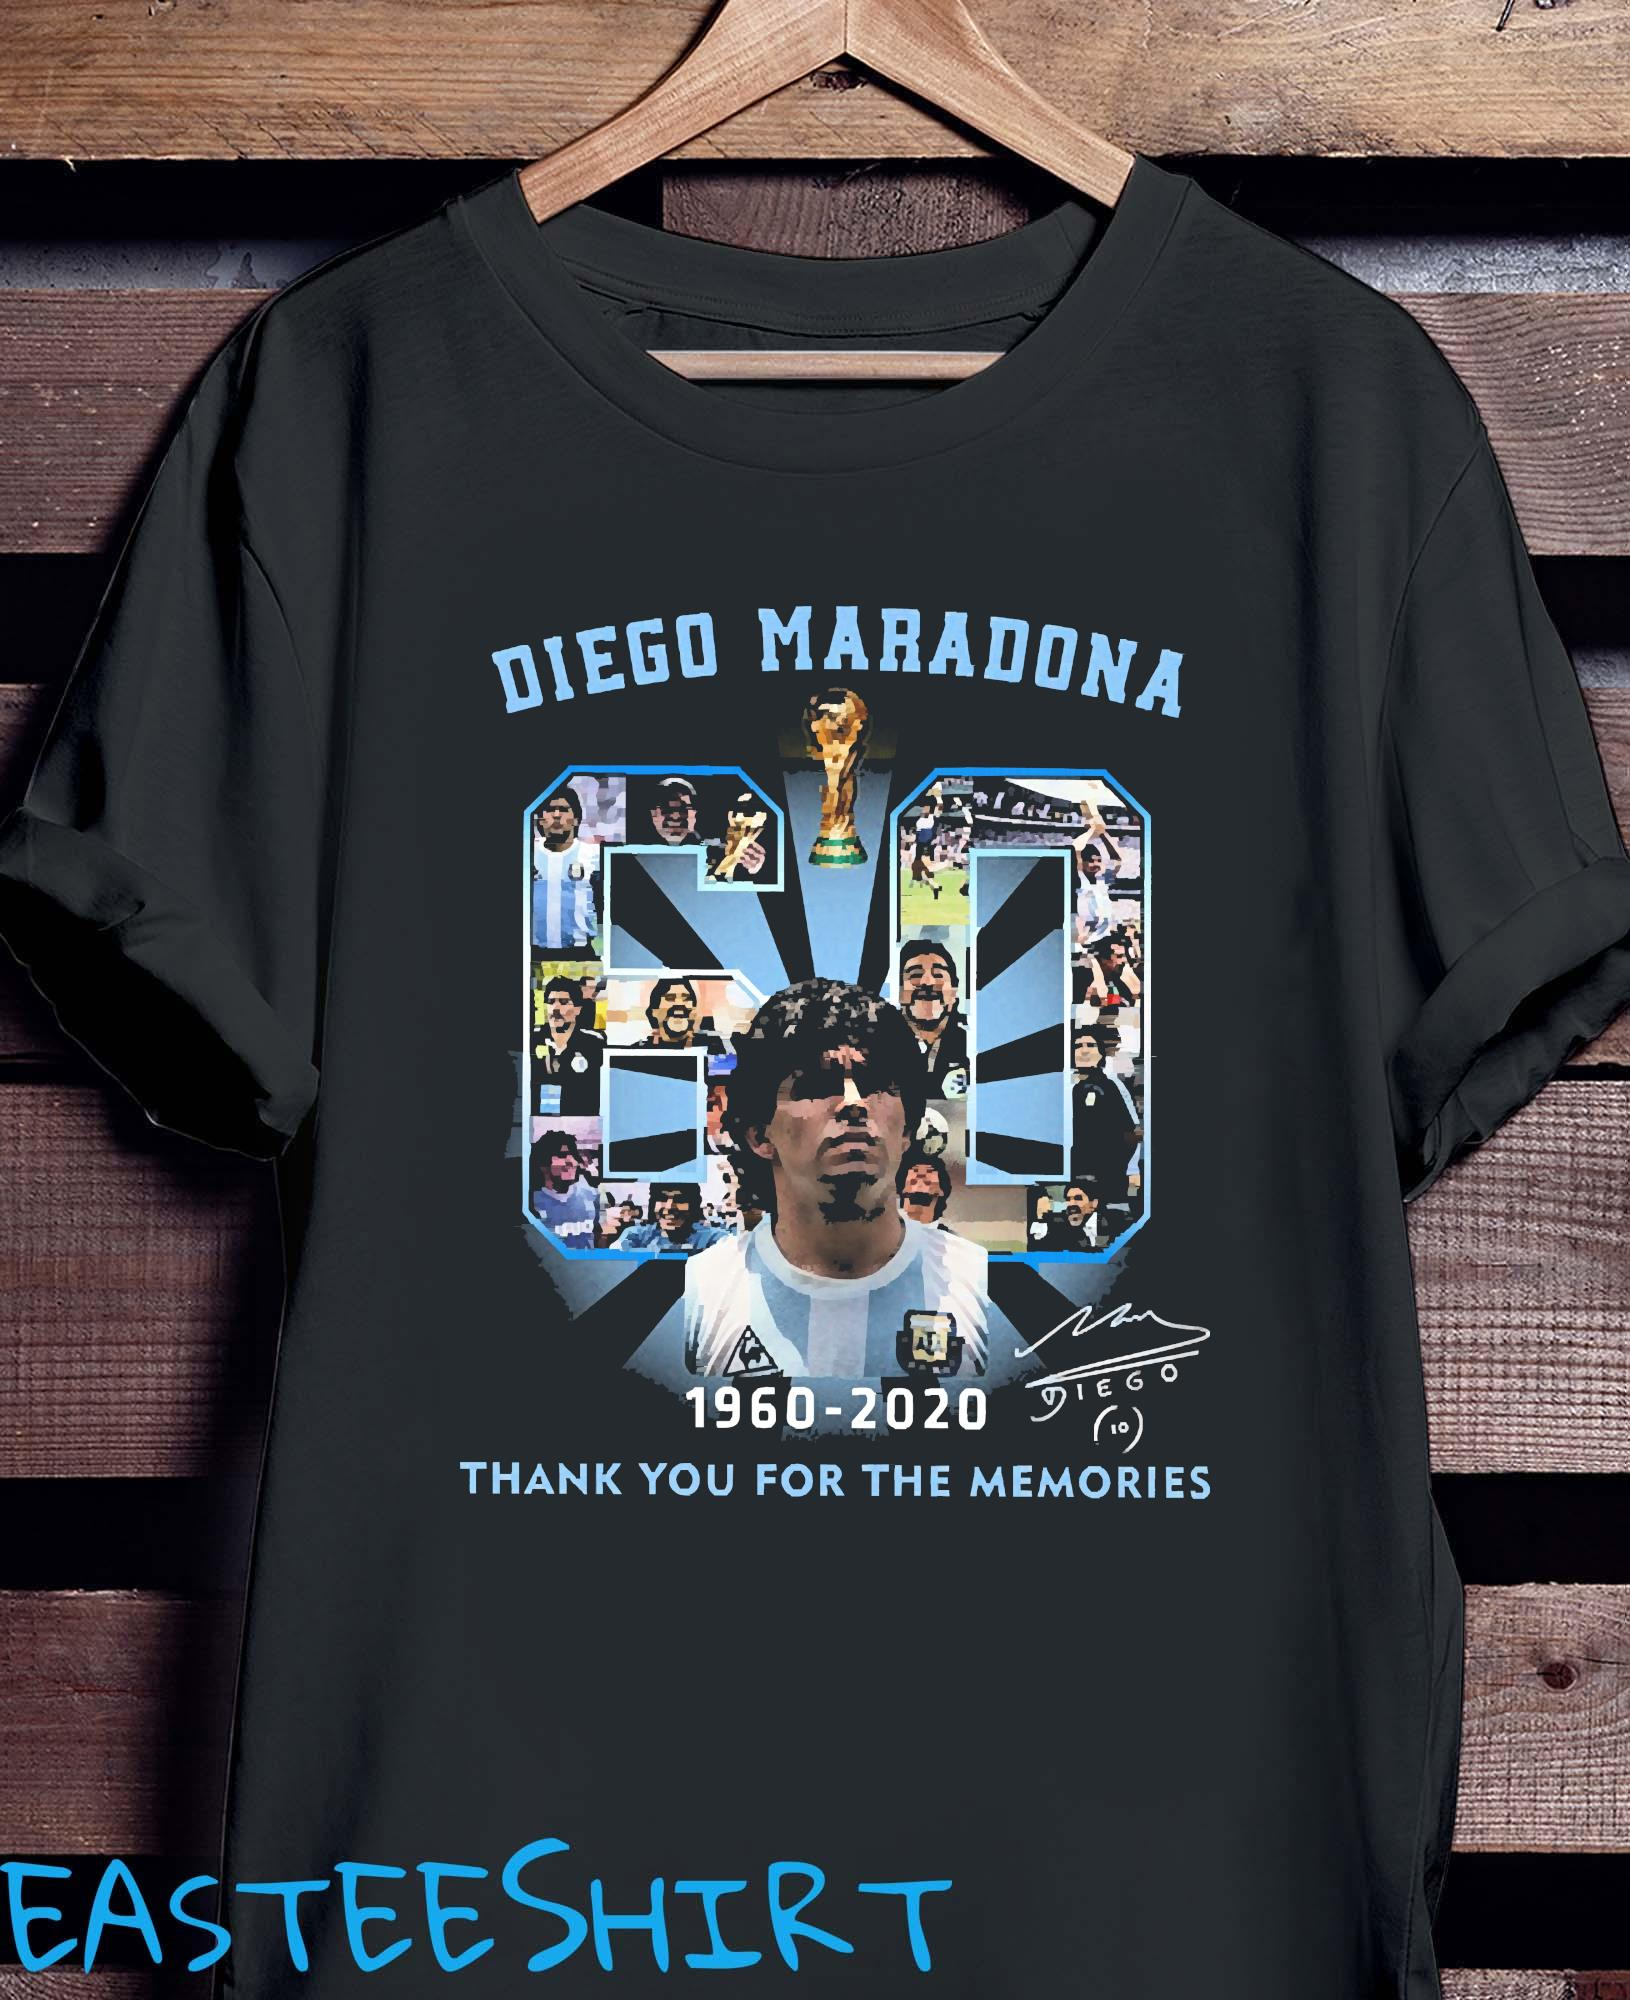 Diego Maradona 60 Years 1960 2020 Thank You For The Memories Shirt